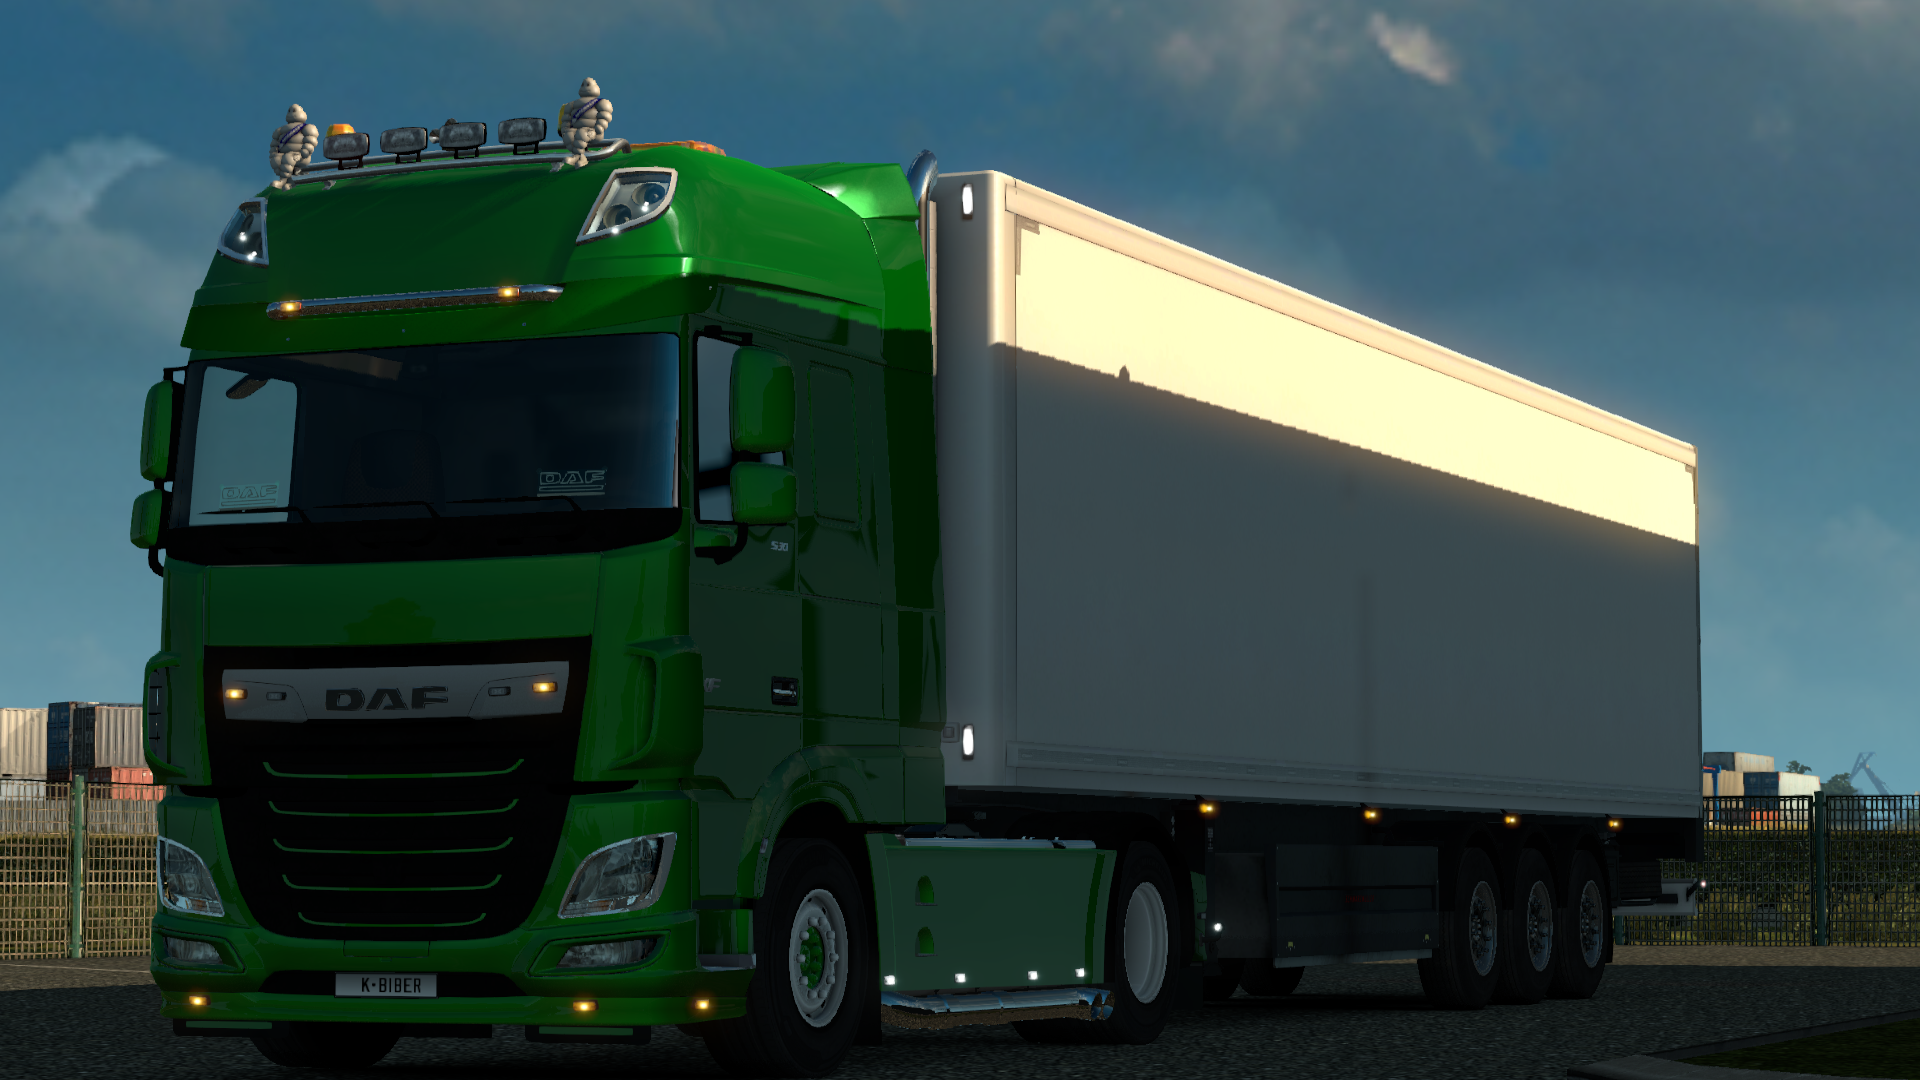 ets2_20180805_152625_00.png